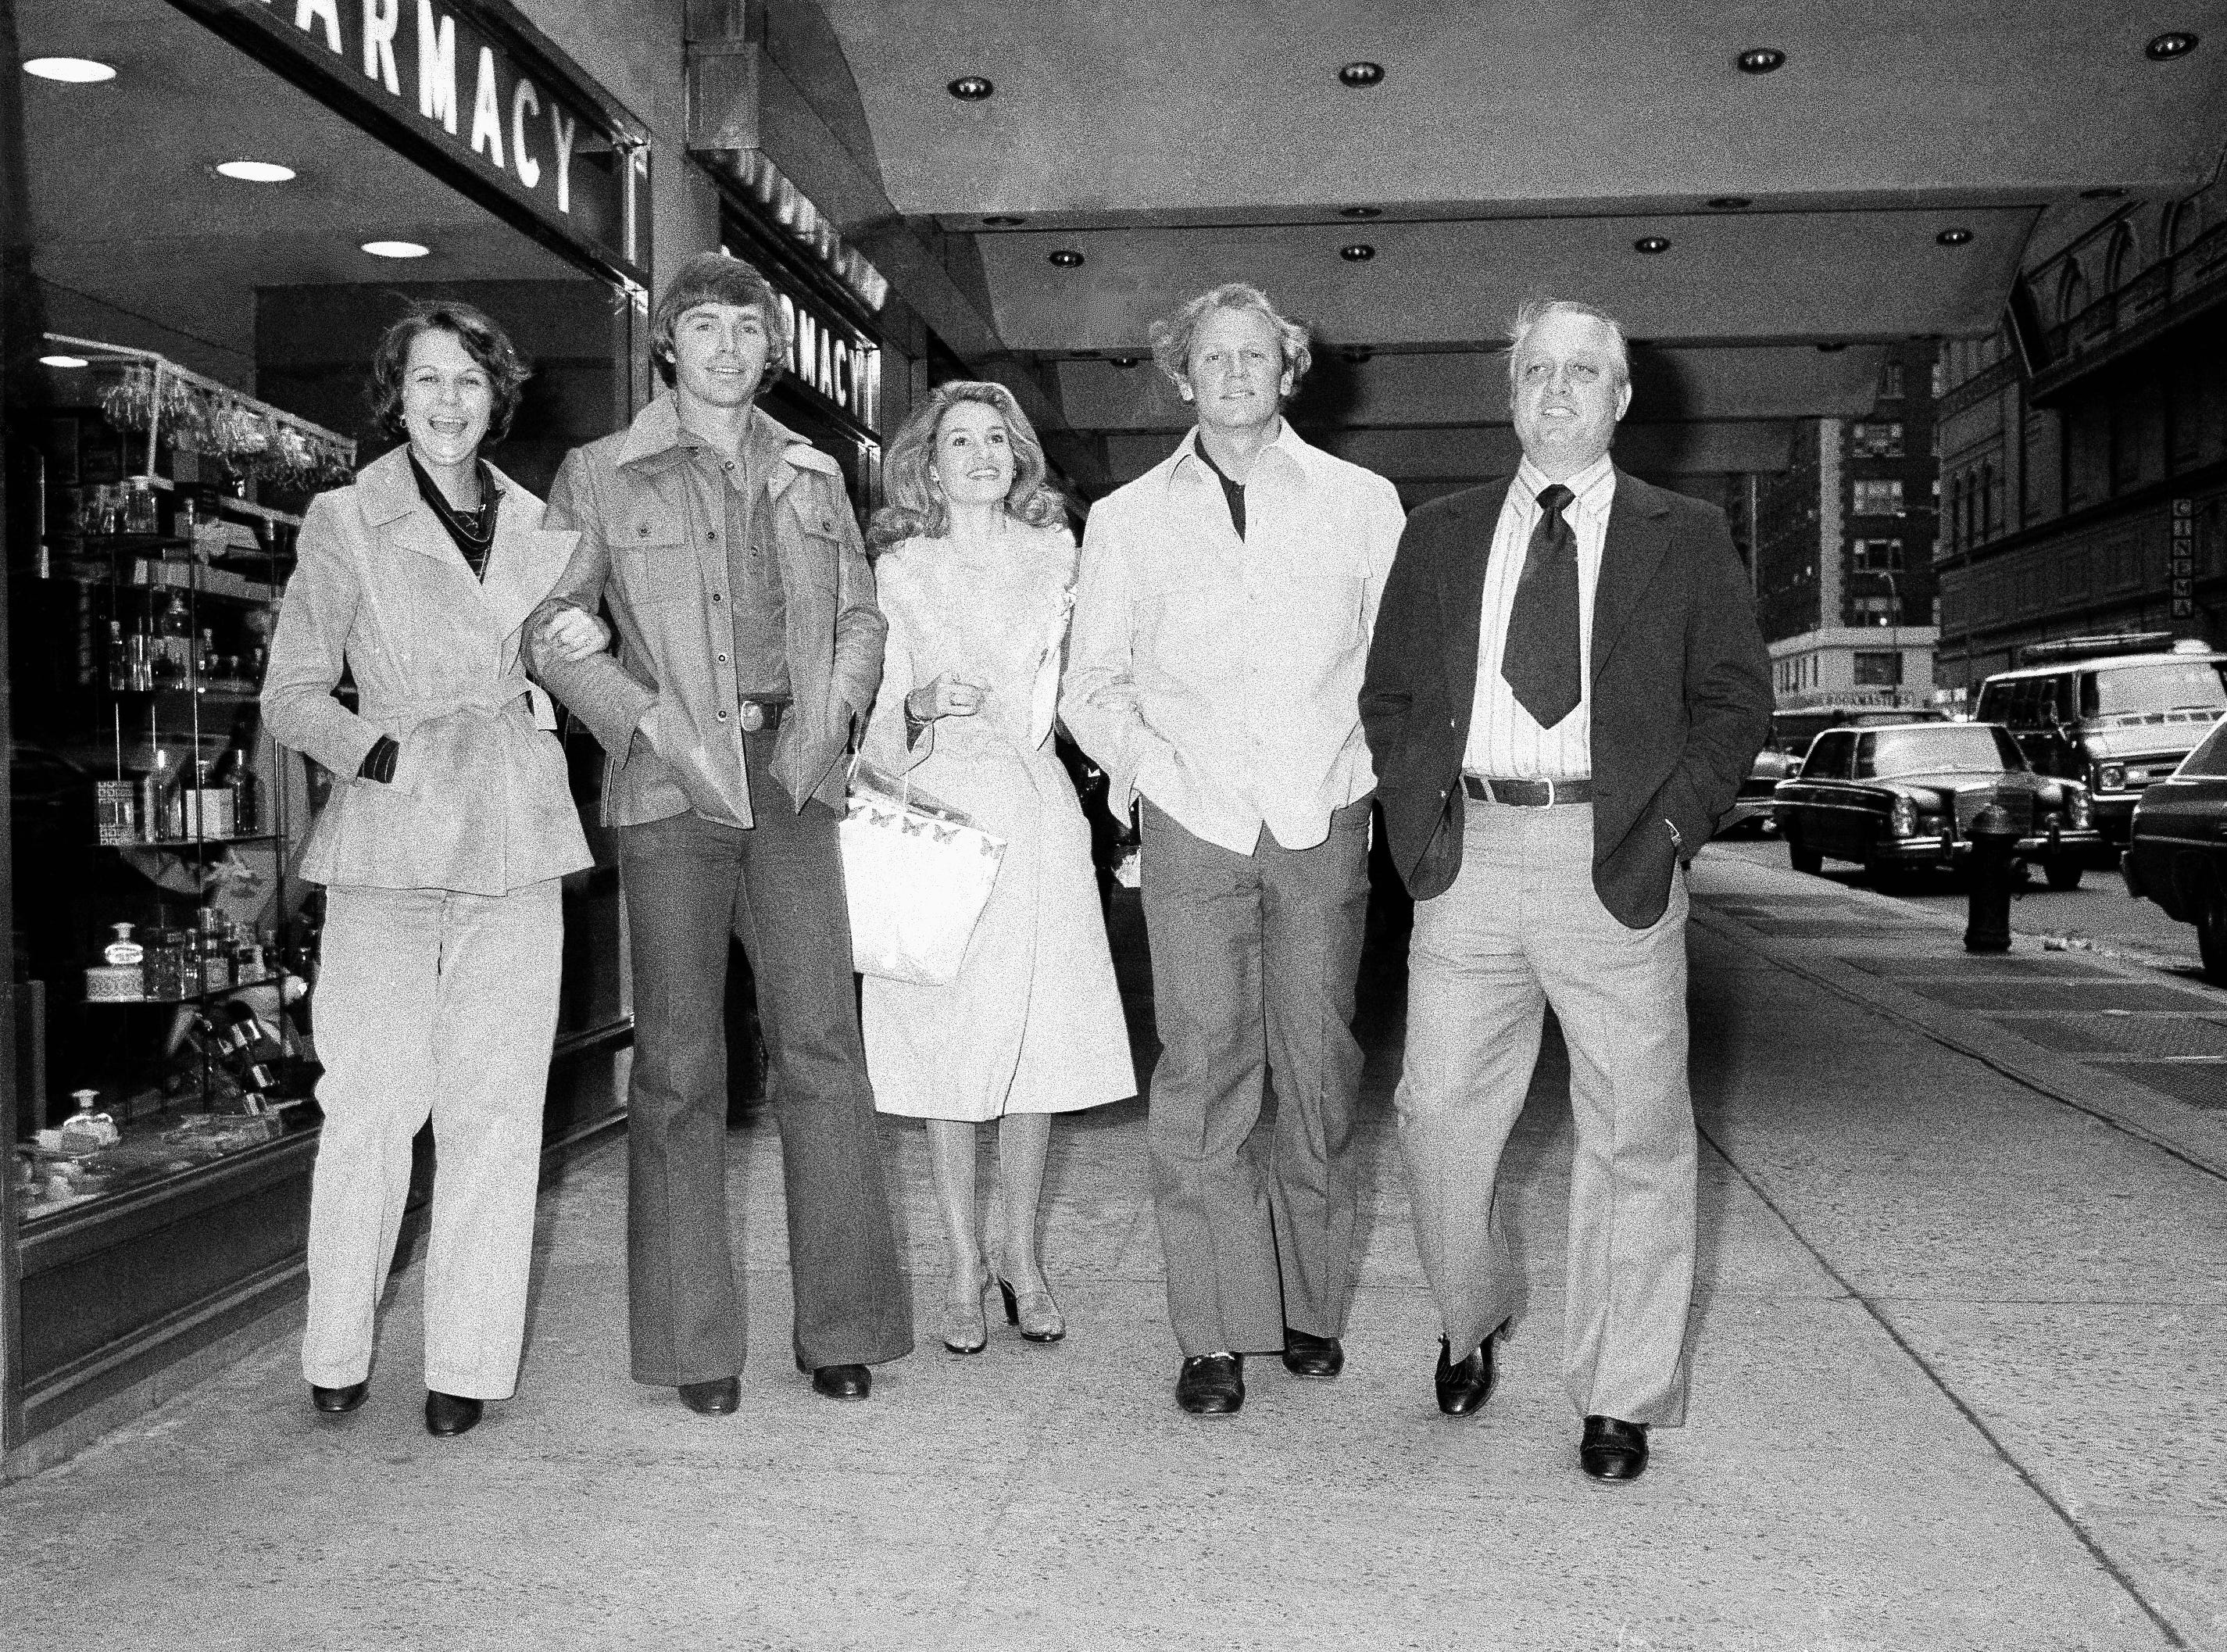 Dodger manager Tommy Lasorda, right, is accompanied by shortstop Bill Russell, second from left, and Russell's wife, Mary Anne and pitcher Burt Hooton, and Hooton's wife, Ginger, on Monday, Oct. 18, 1977 in New York. The group was leaving the Sheraton Hotel in New York City after a news conference. (AP Photo/Marty Lederhandler)